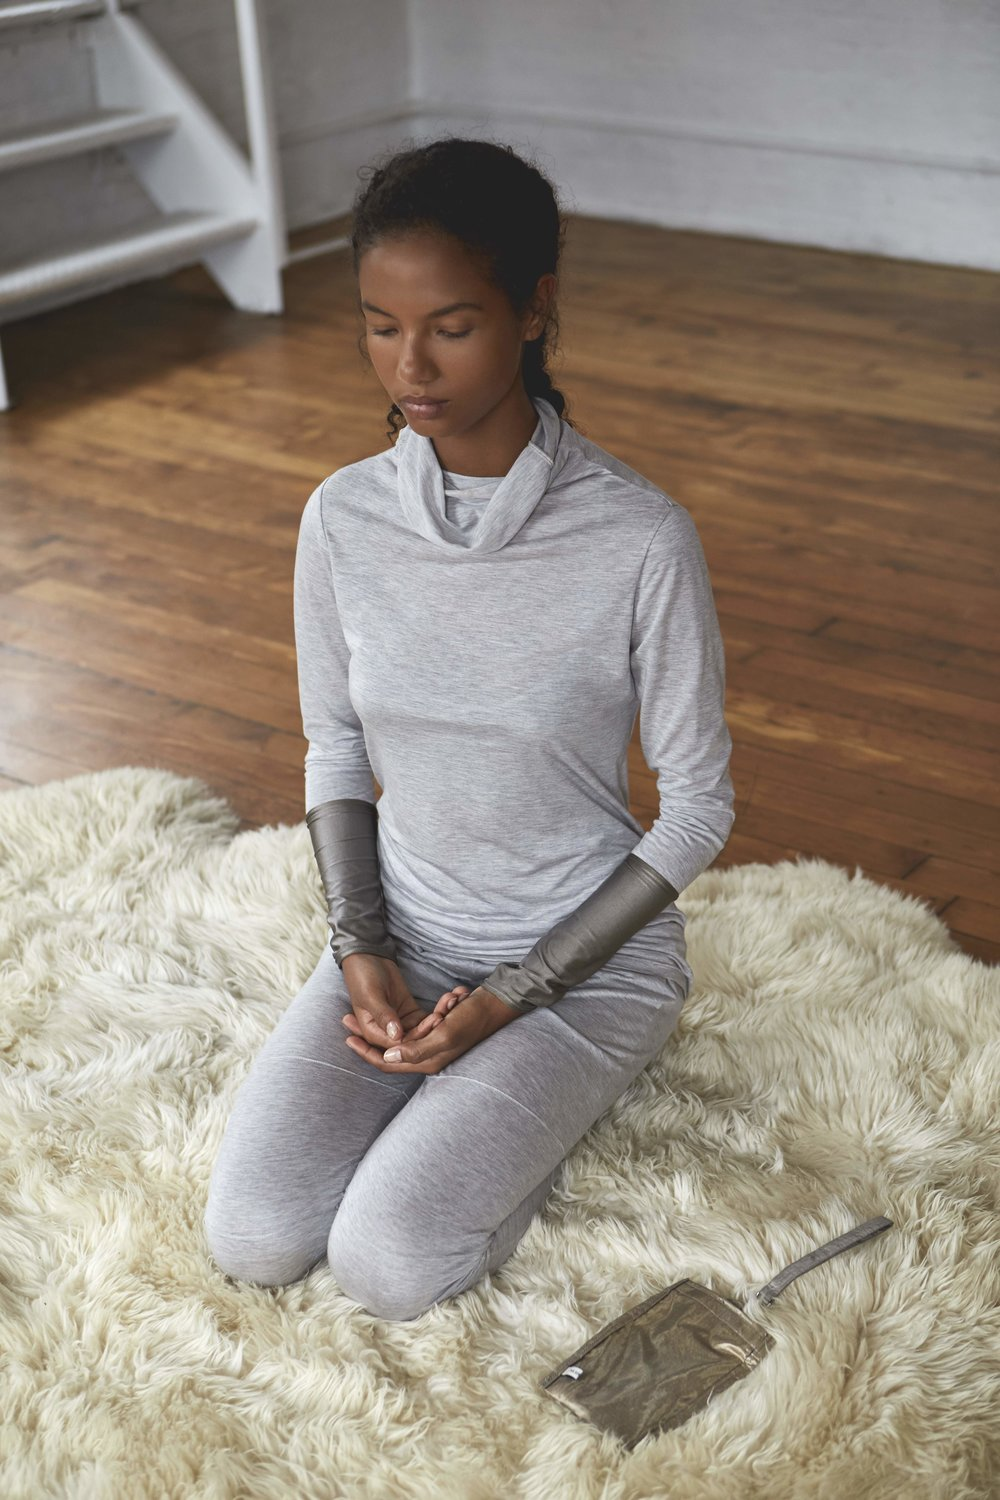 ARJUNA.AG Privacy Pouch, used for meditation, focused work or sleep.